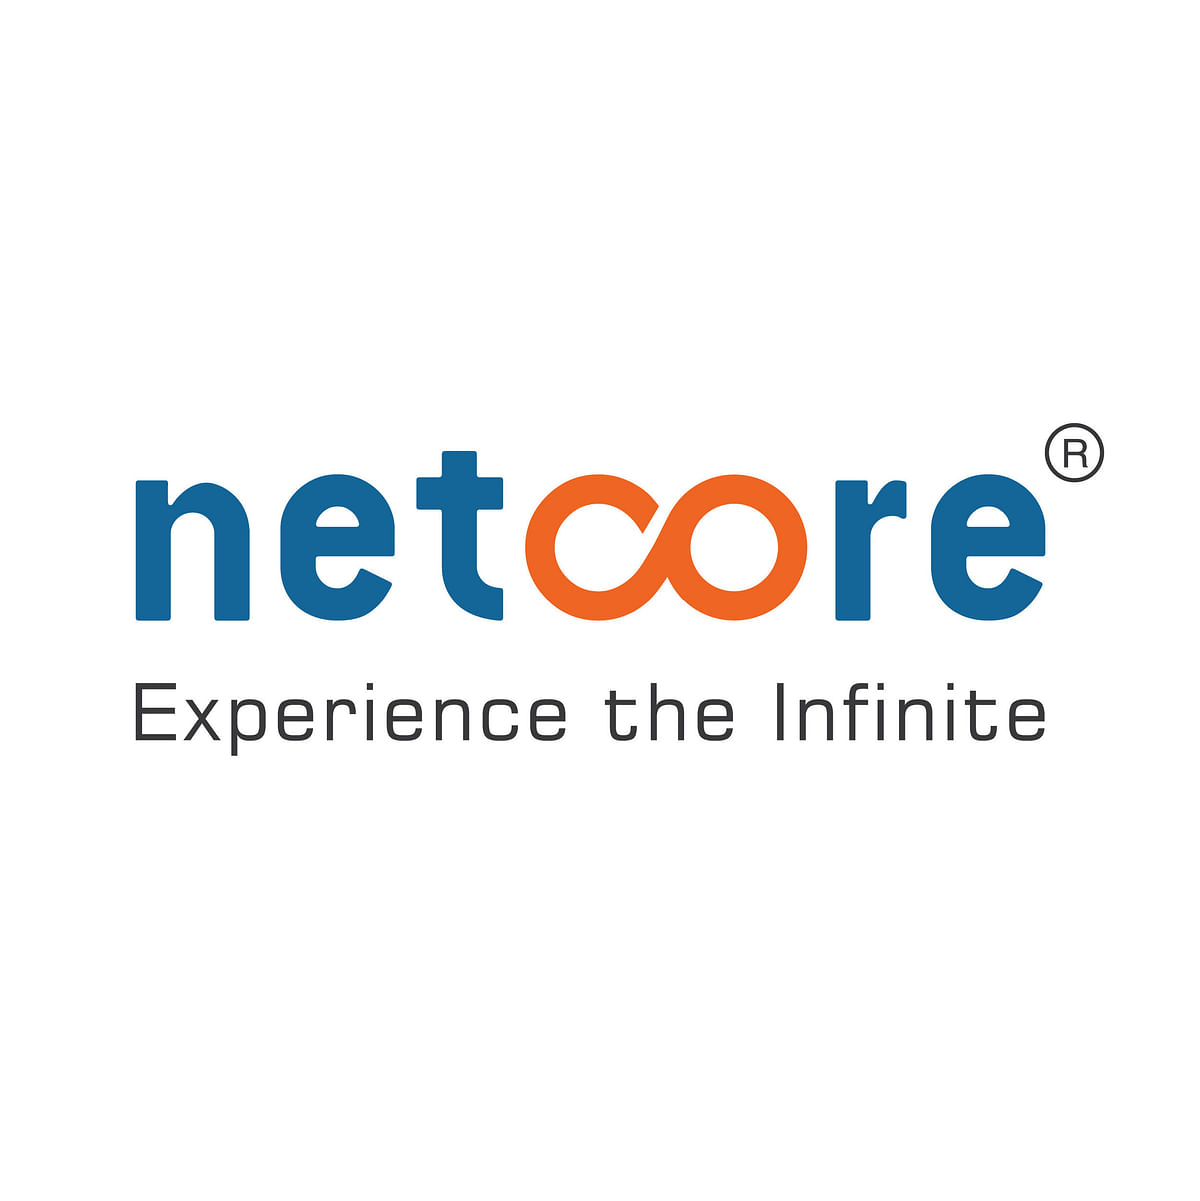 NETCORE Launches Data On Email Reception For The Year 2018